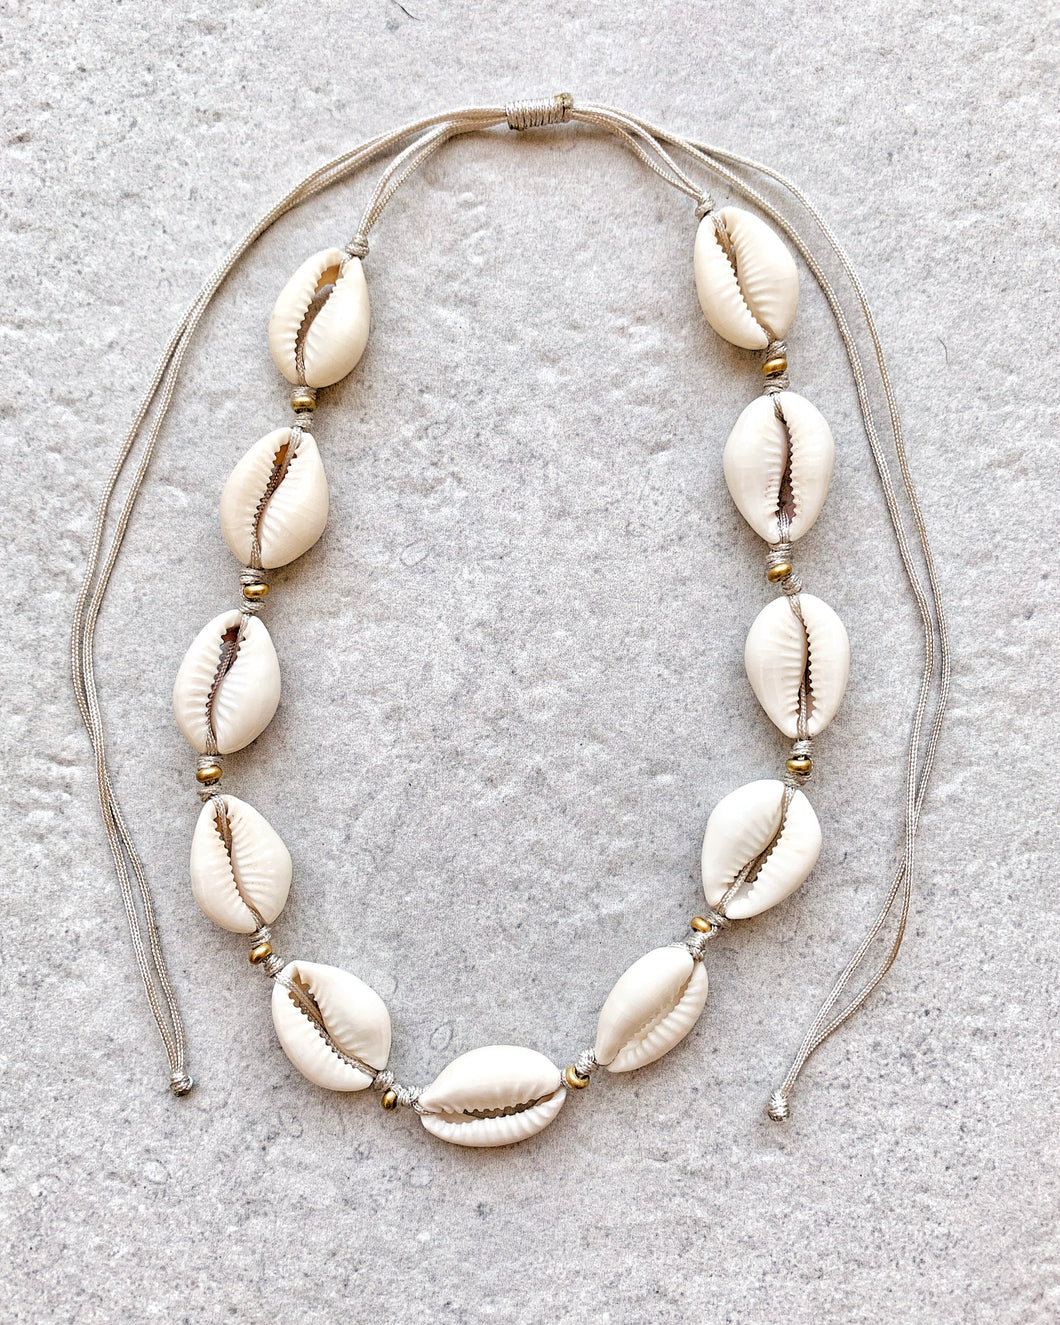 GOLD BEADS SHELL NECKLACE